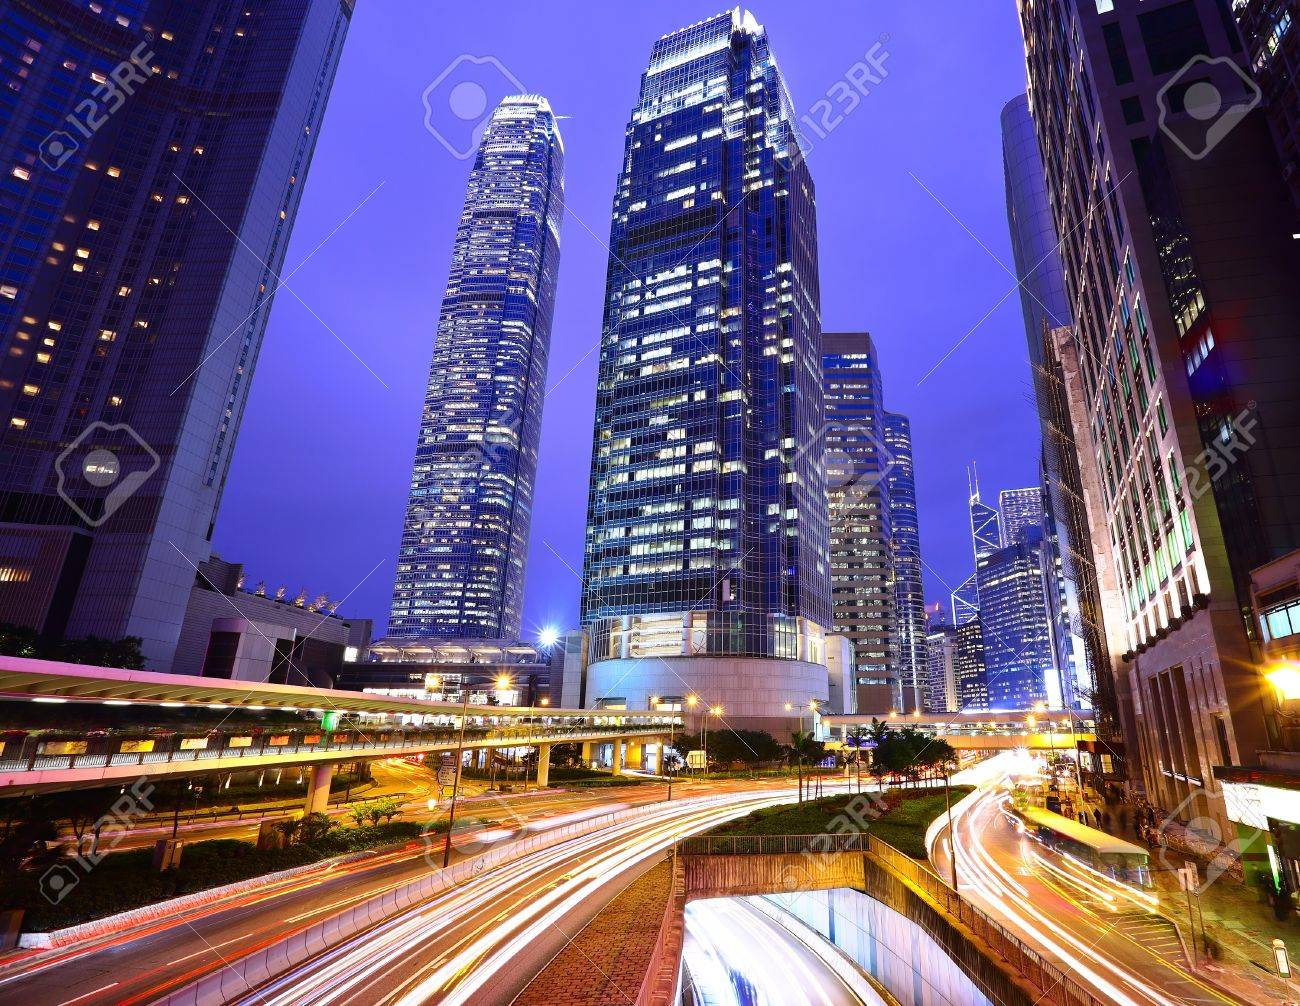 traffic in city at night Stock Photo - 10007871